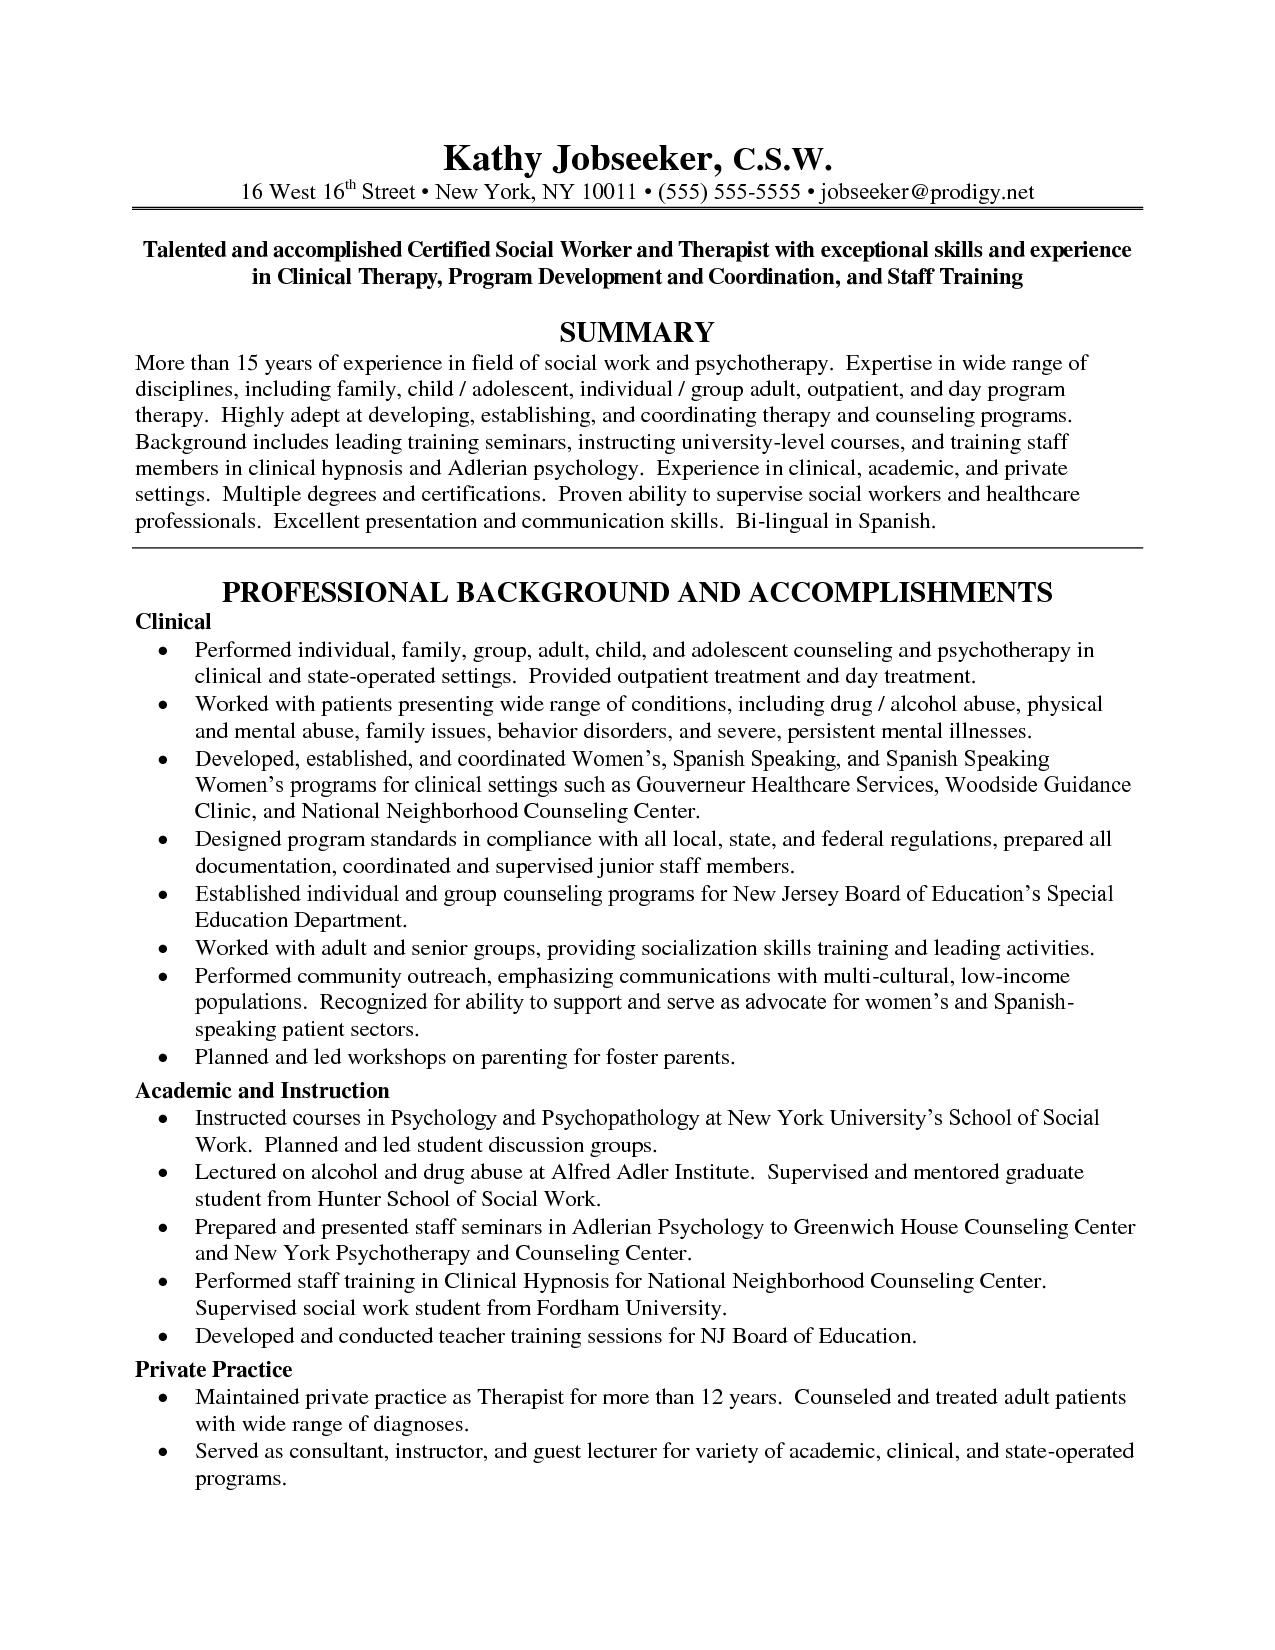 Social Work Resume Objective Social Work Resume Examples Social Work Resume With License Social